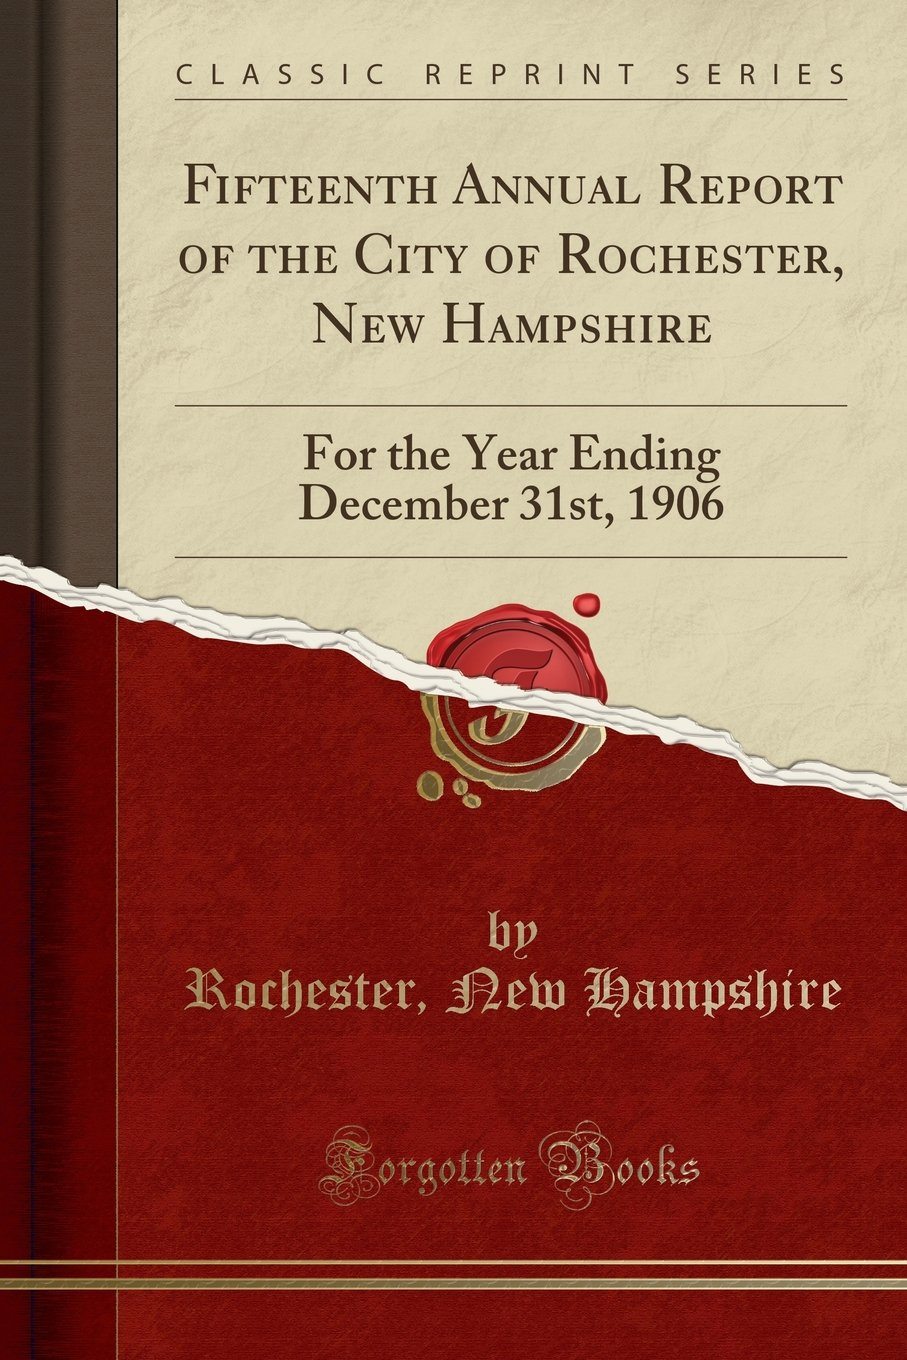 Fifteenth Annual Report of the City of Rochester, New Hampshire: For the Year Ending December 31st, 1906 (Classic Reprint) pdf